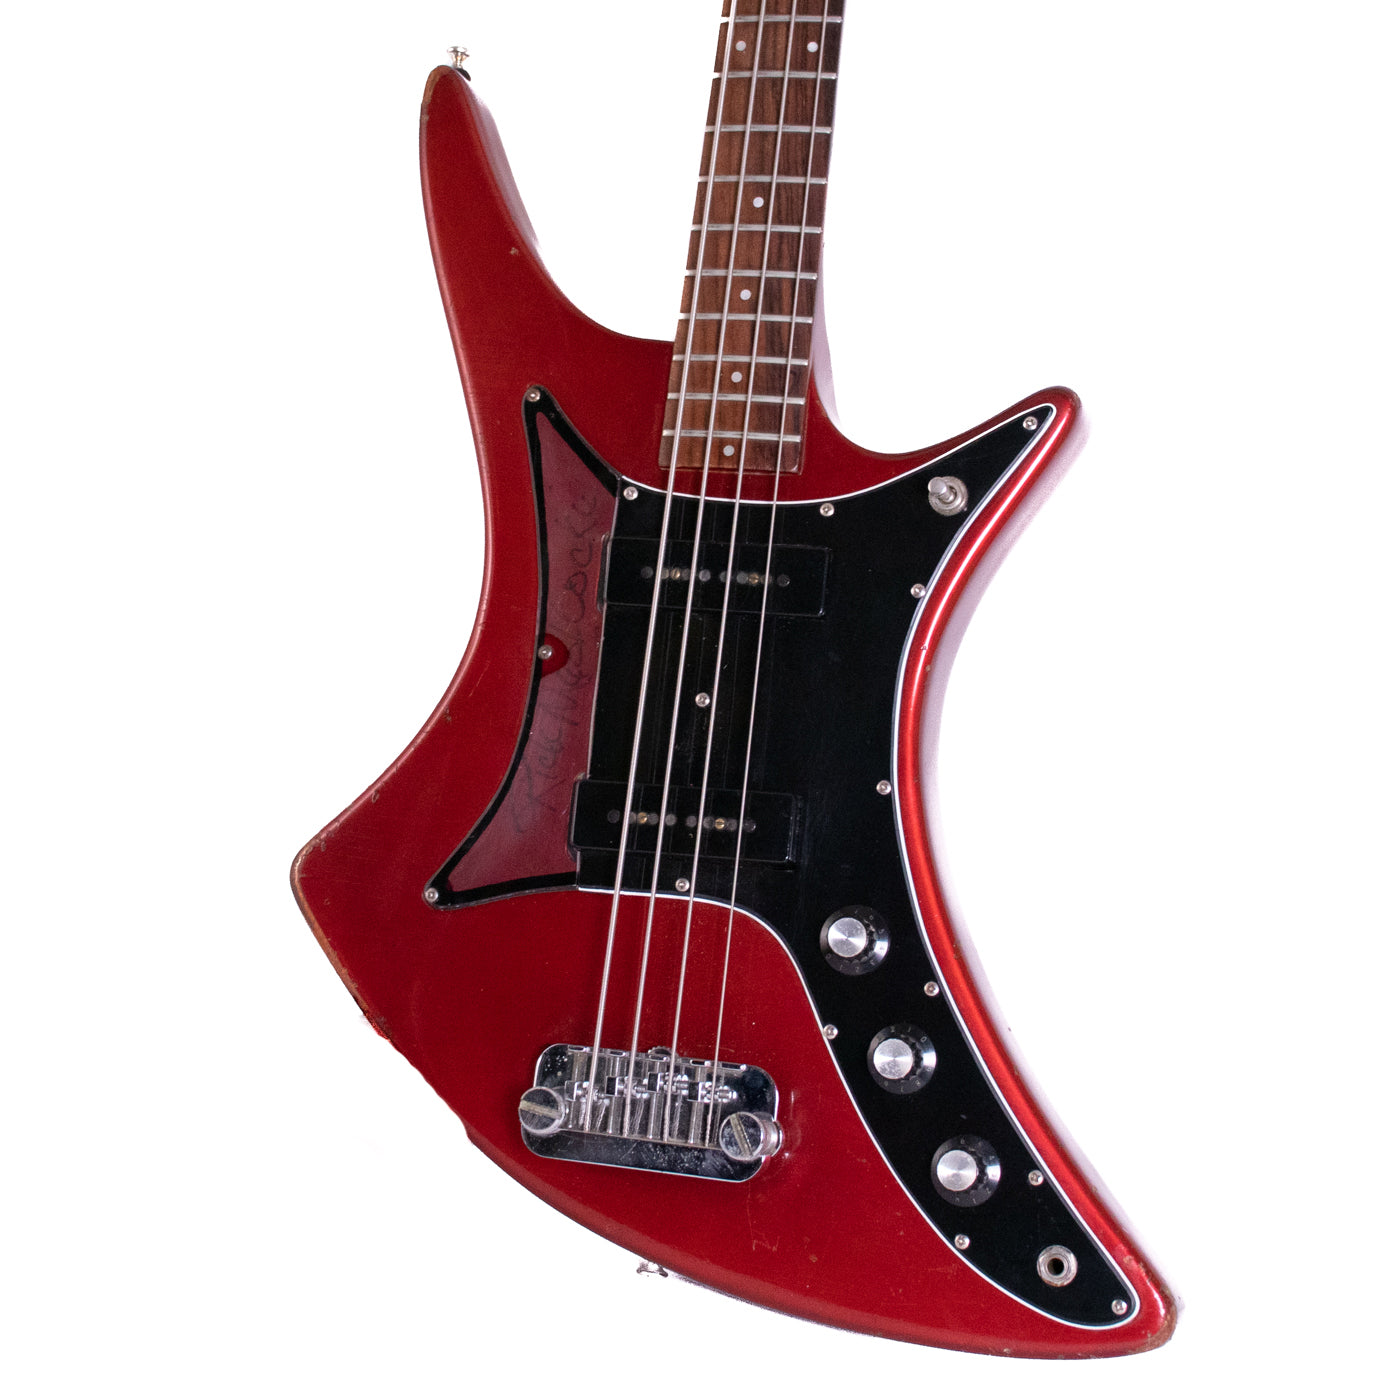 1982 Guild X-702 Bass Candy Apple Red image 2